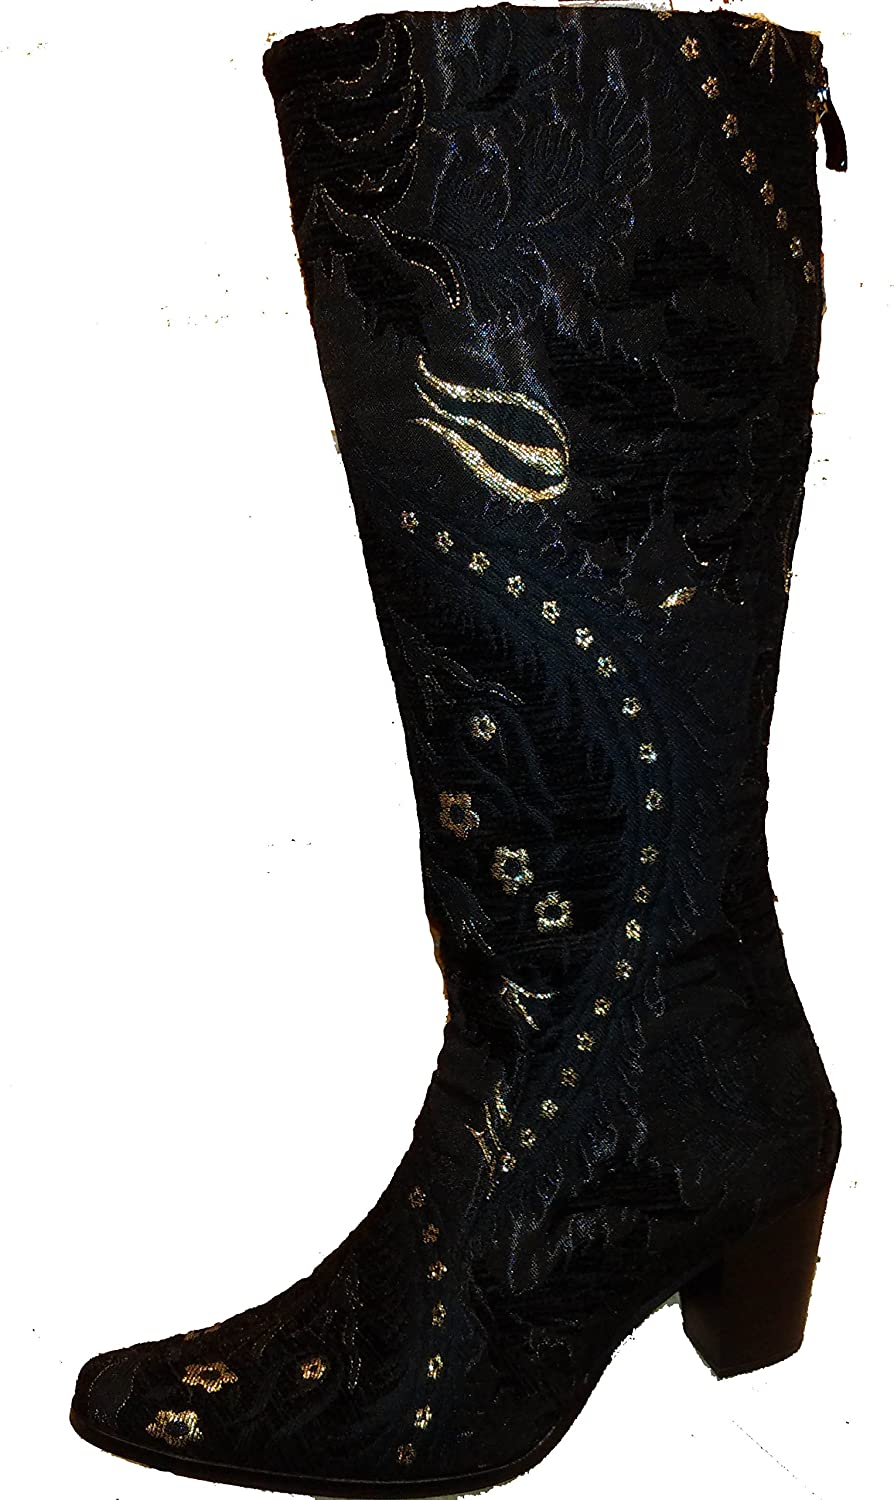 Rockwell Tharp Black Tapestry Print Fashion Boot with Side Zipper